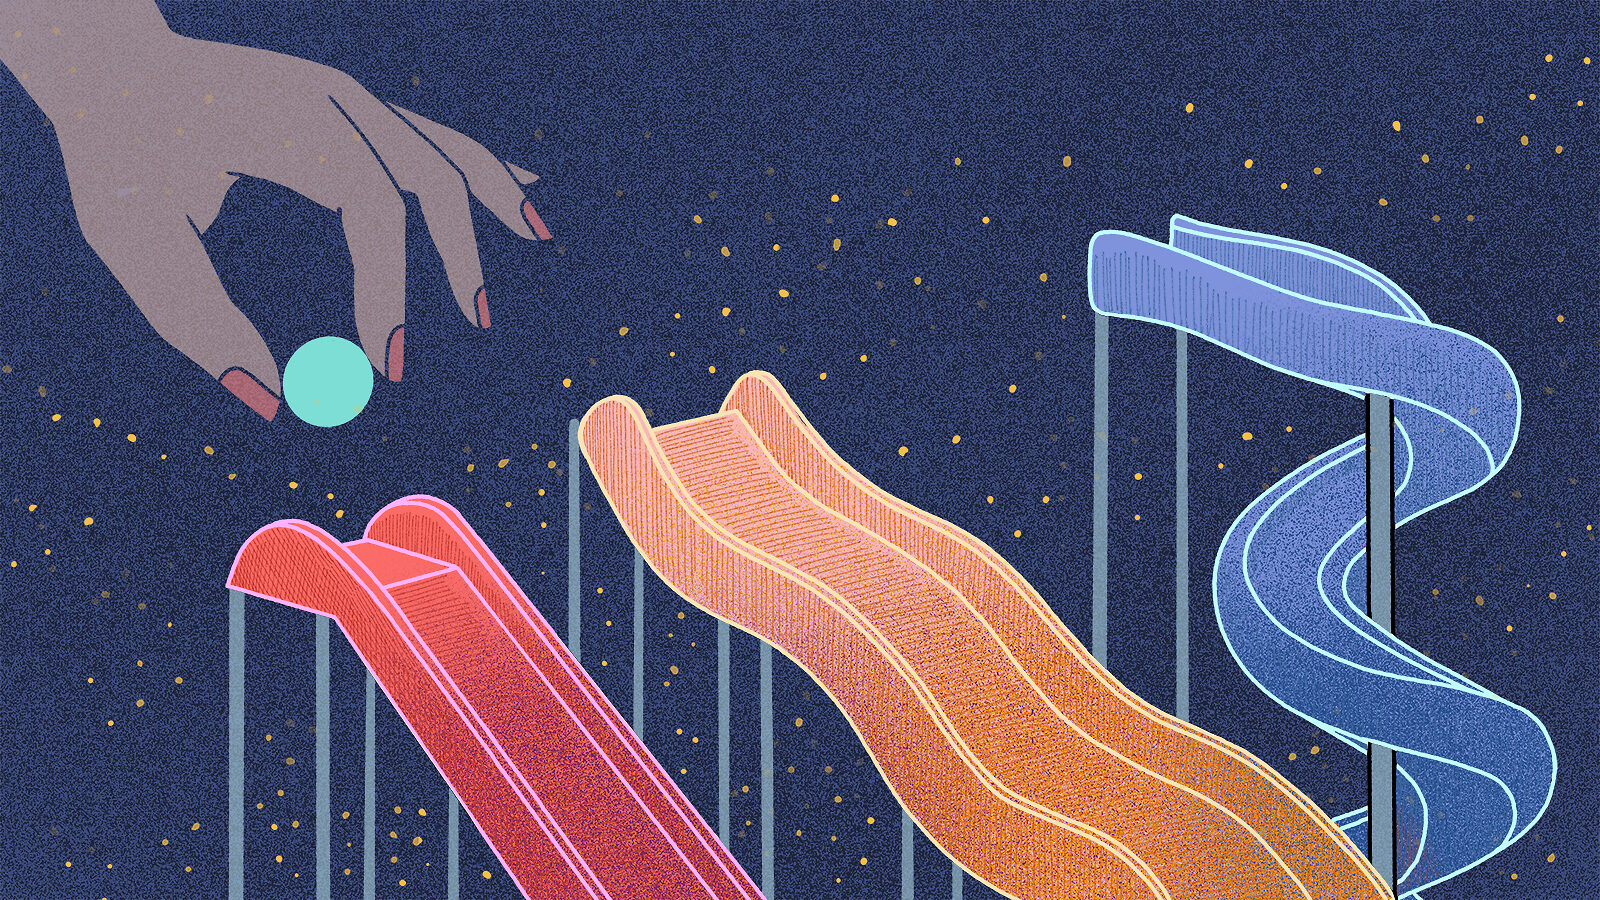 Illustration of hot, warm, and cold dark matter particle marble run